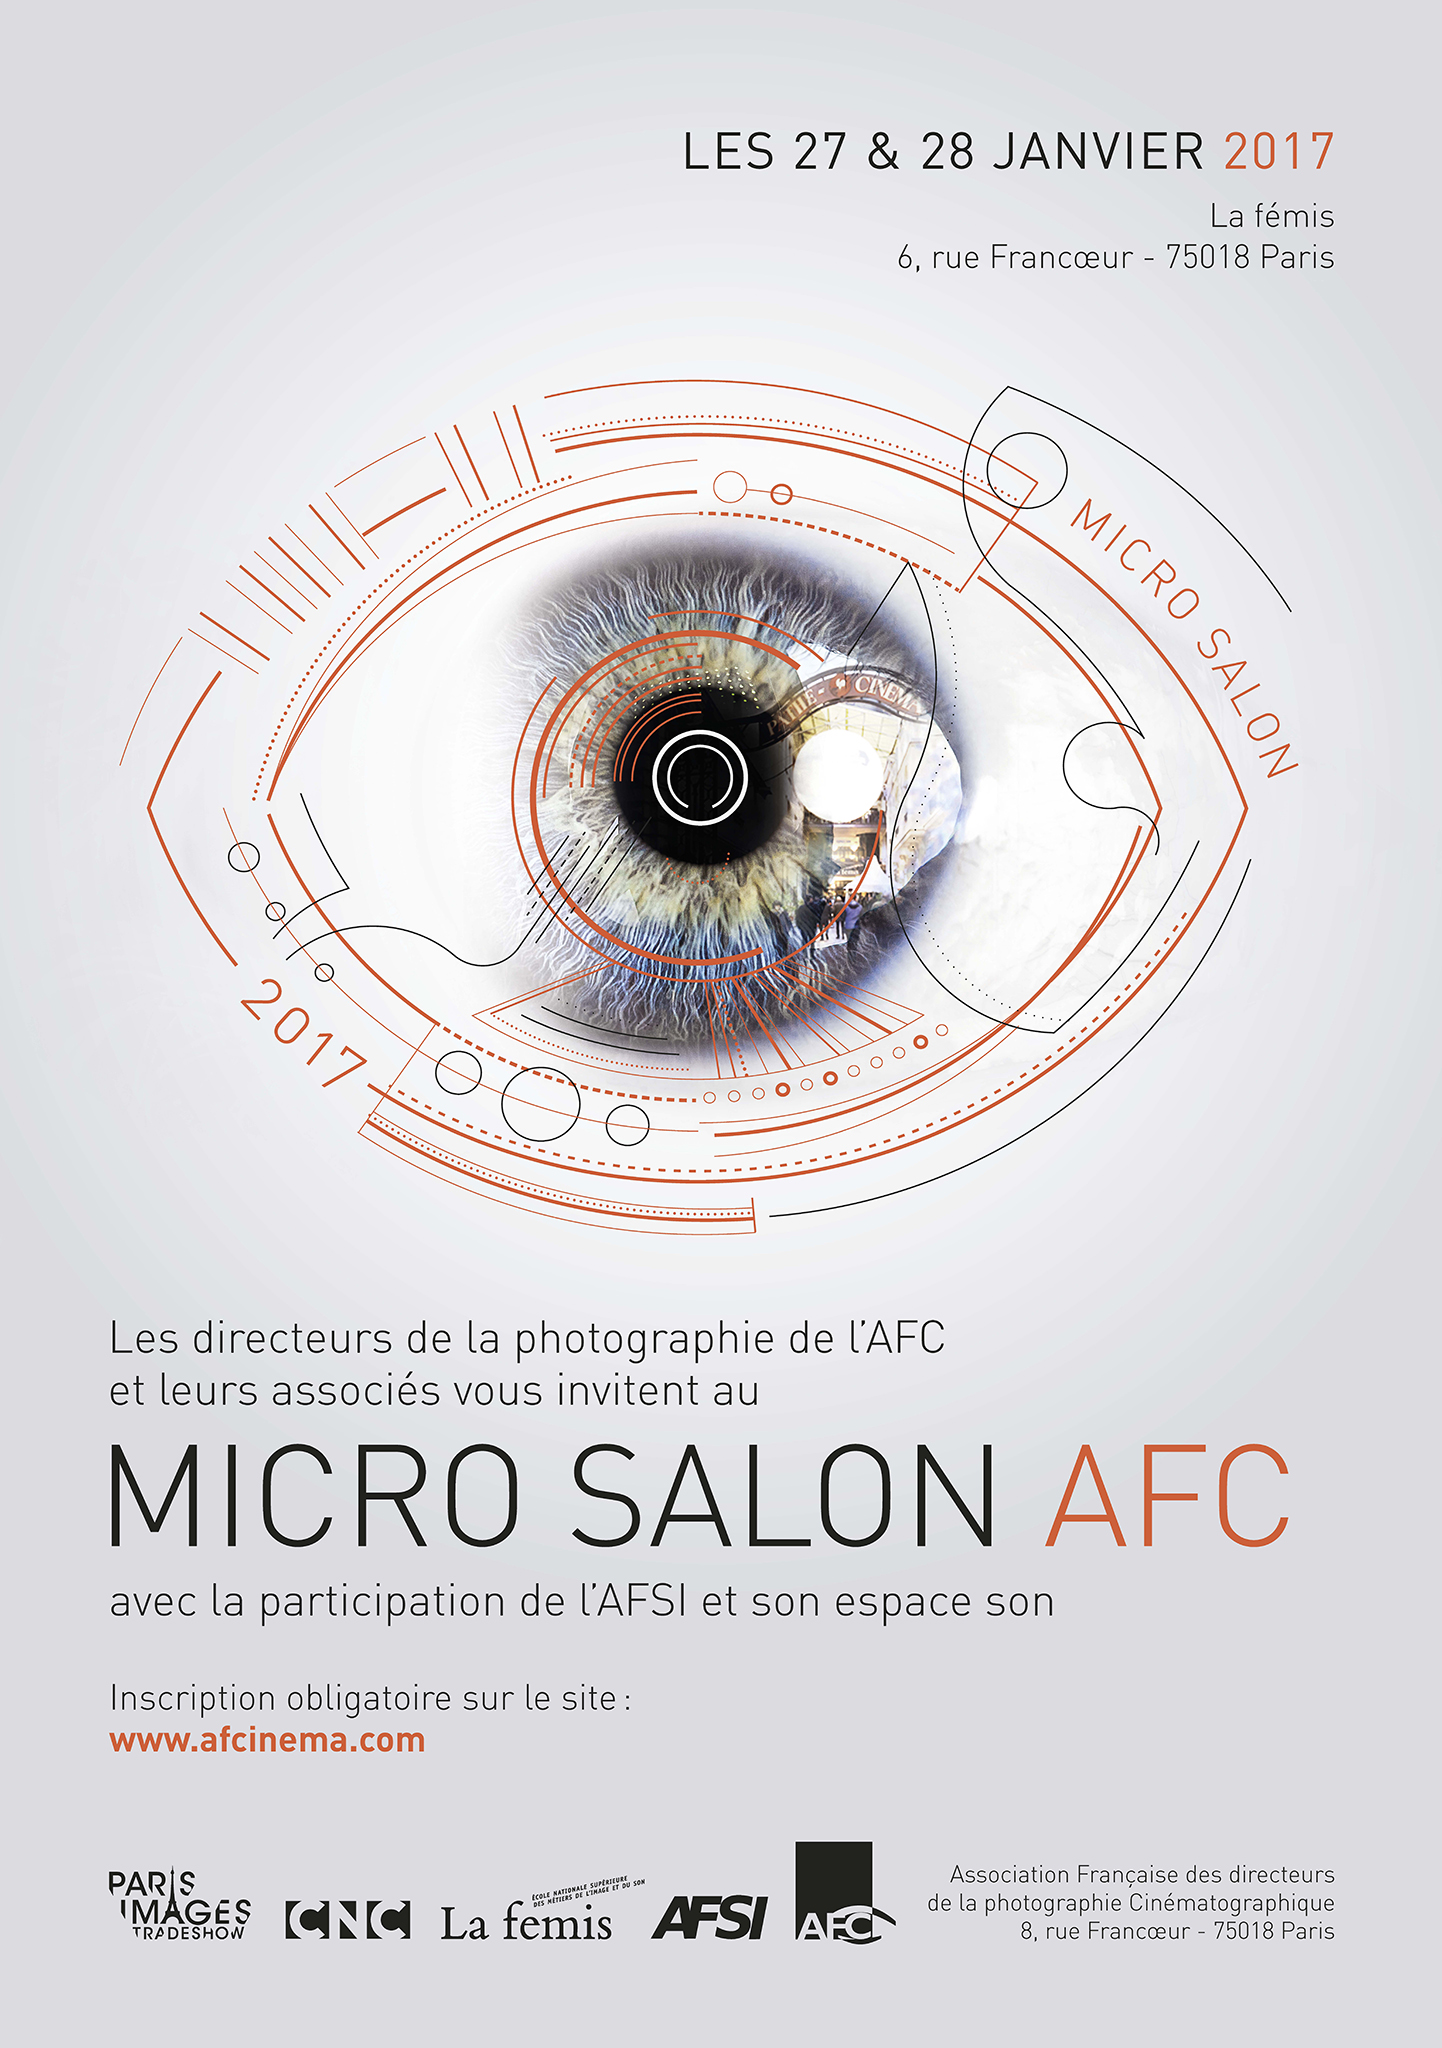 bebob at the Micro Salon AFC Show in Paris